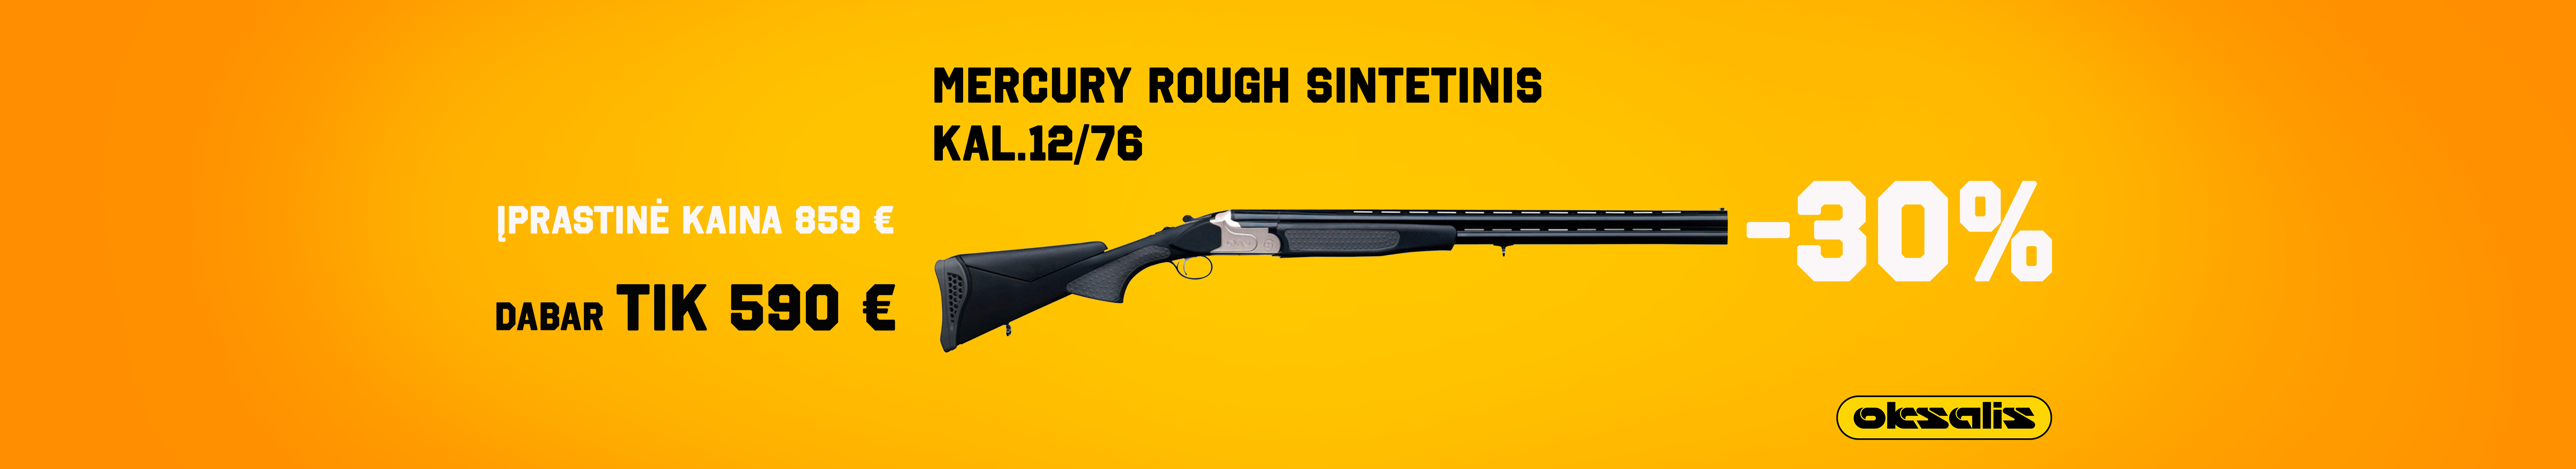 Mercury Rough sintetinis